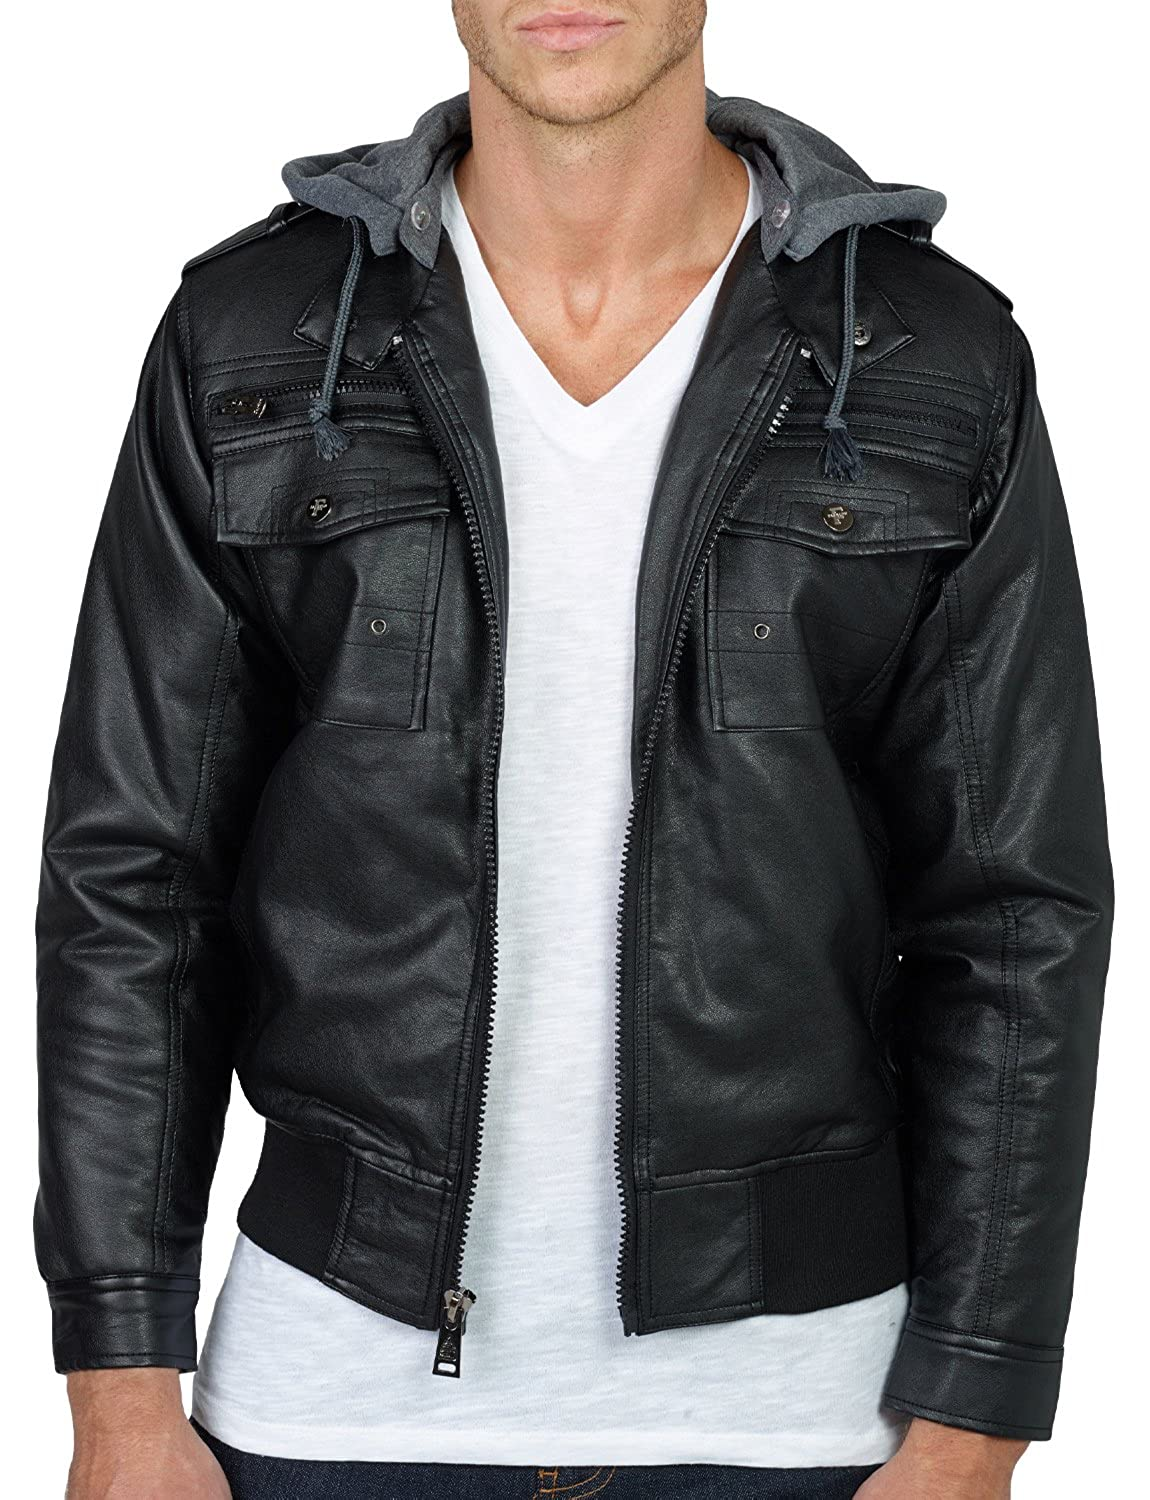 Wantdo Men's Fashion Faux Jackets Pu Leather Jackets With Removable Hood With Gift OLLIN Mens Faux Leather Zip